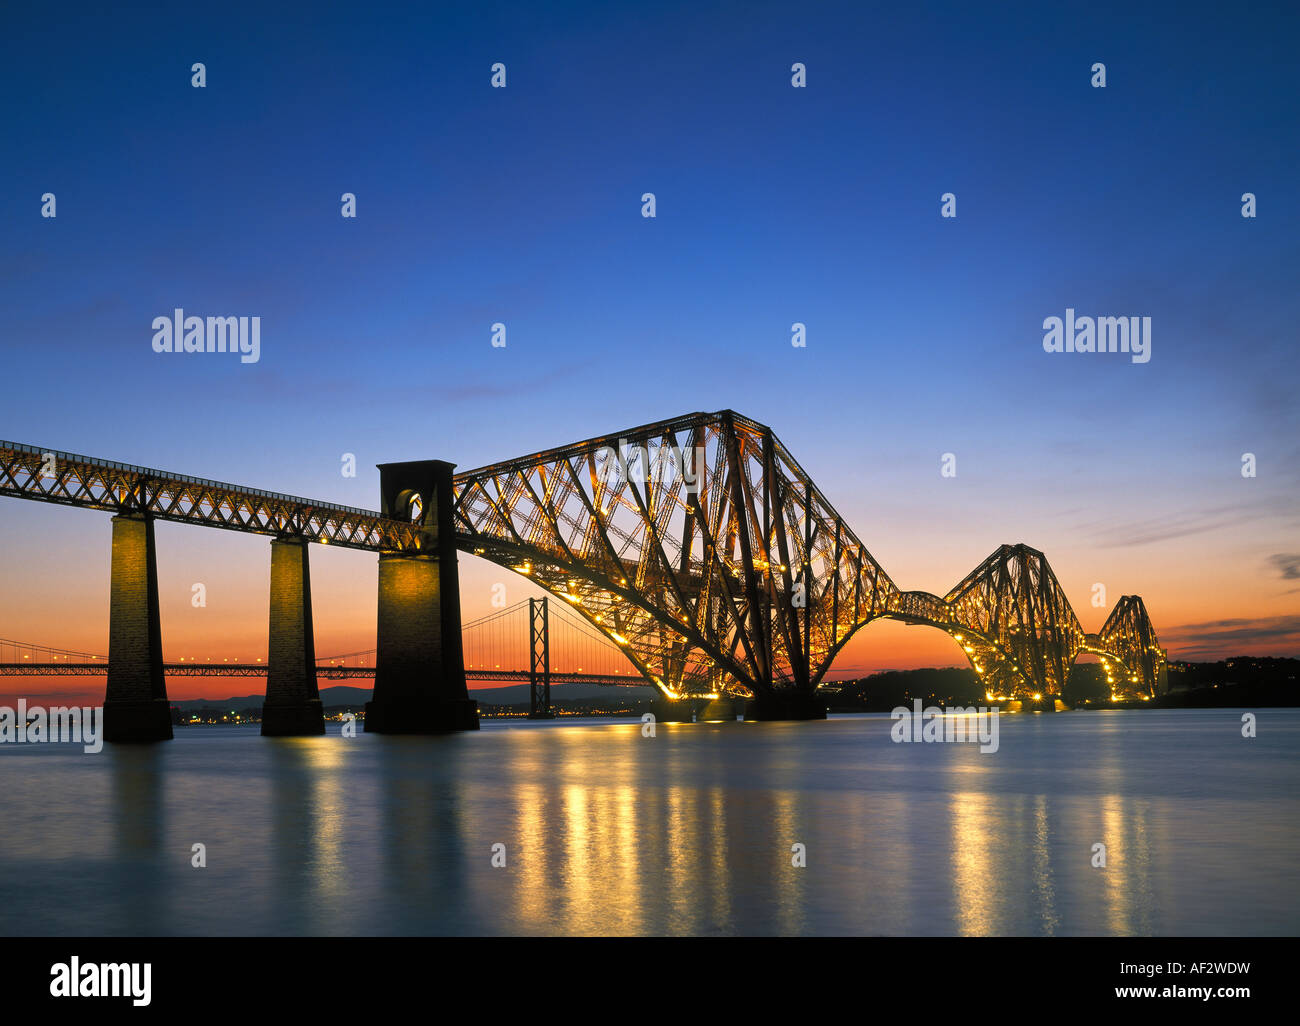 Forth Rail Bridge Fife Scotland UK - Stock Image